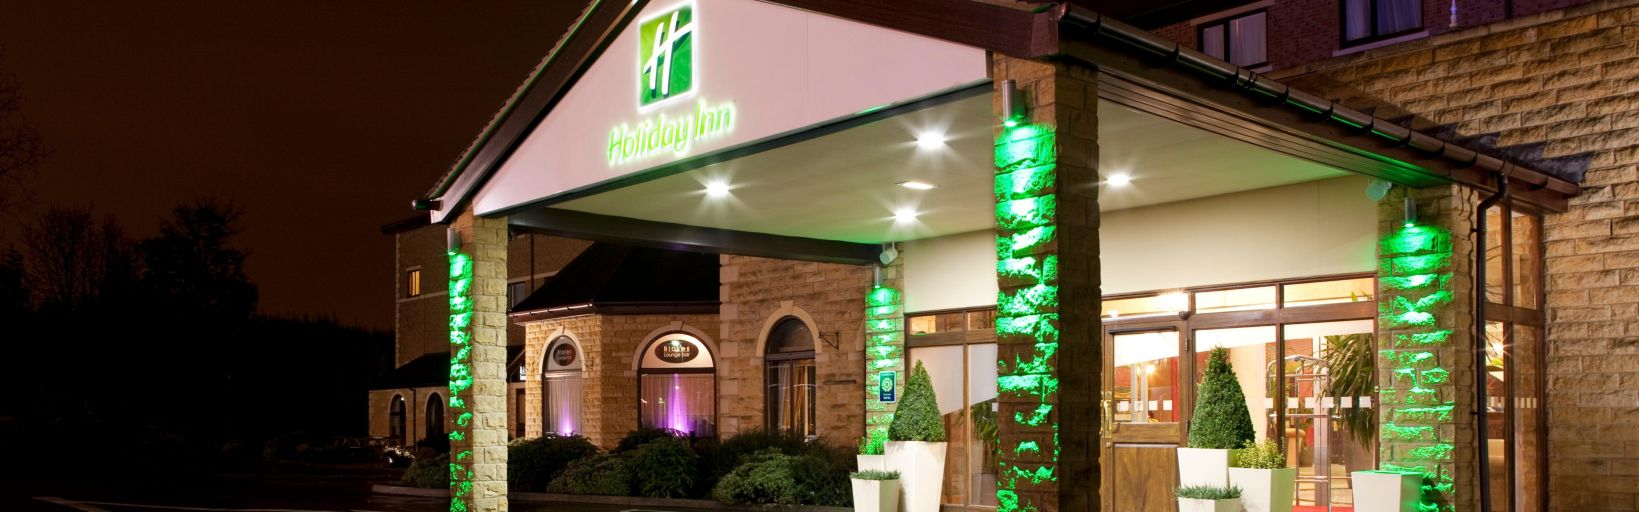 holiday inn barnsley m1 jct 37 ihgのホテル